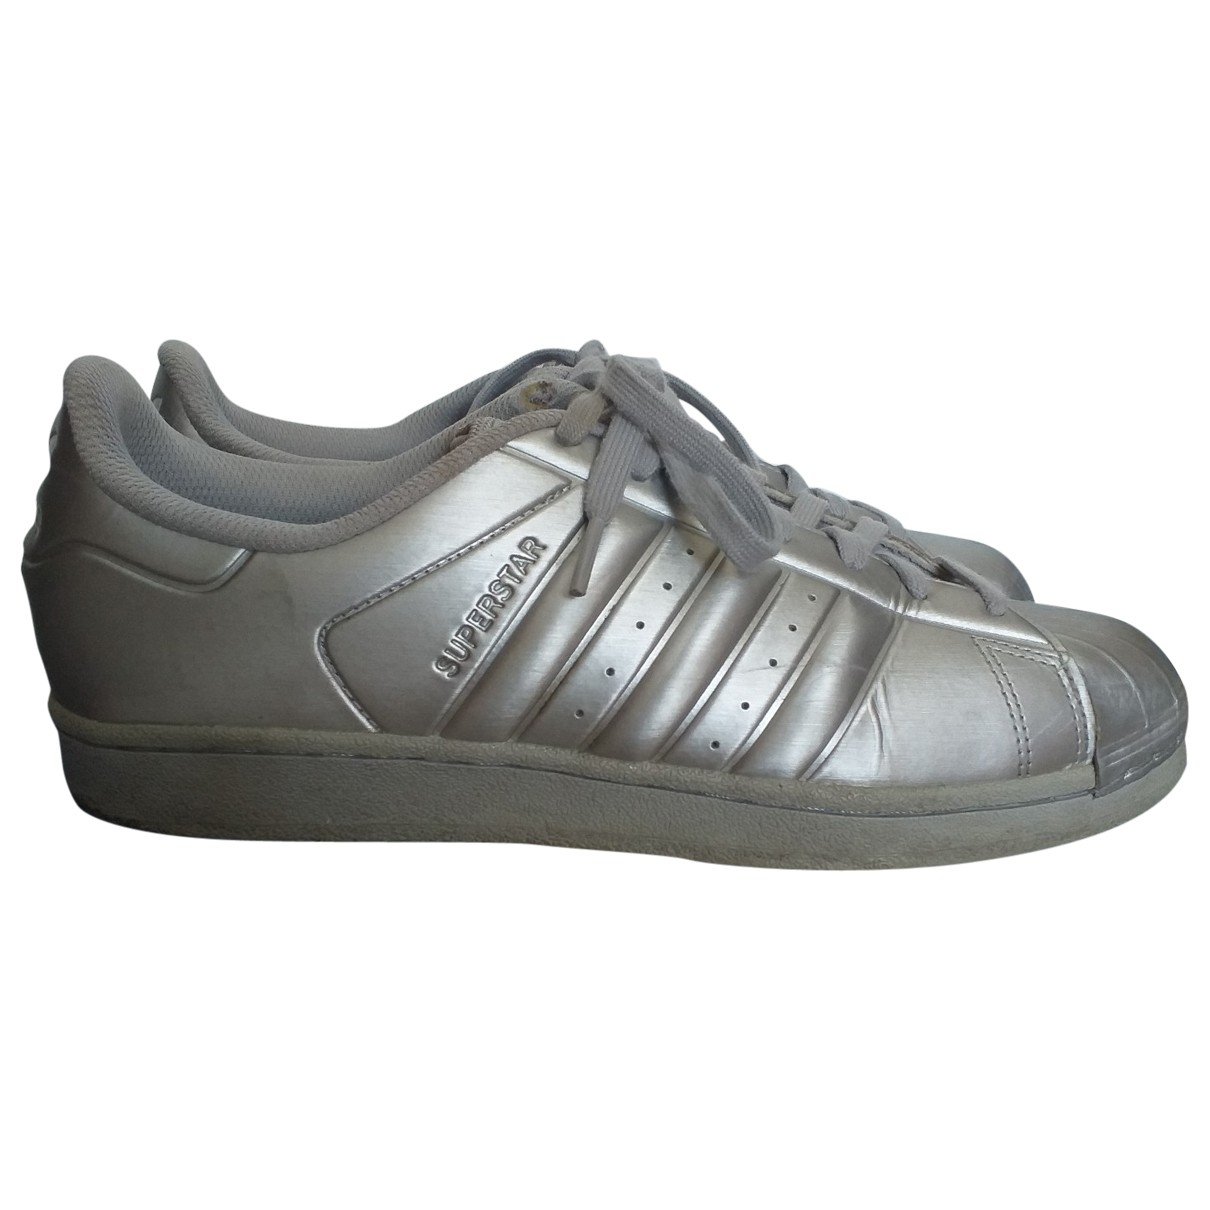 Adidas Superstar Silver Leather Trainers for Women 7 UK